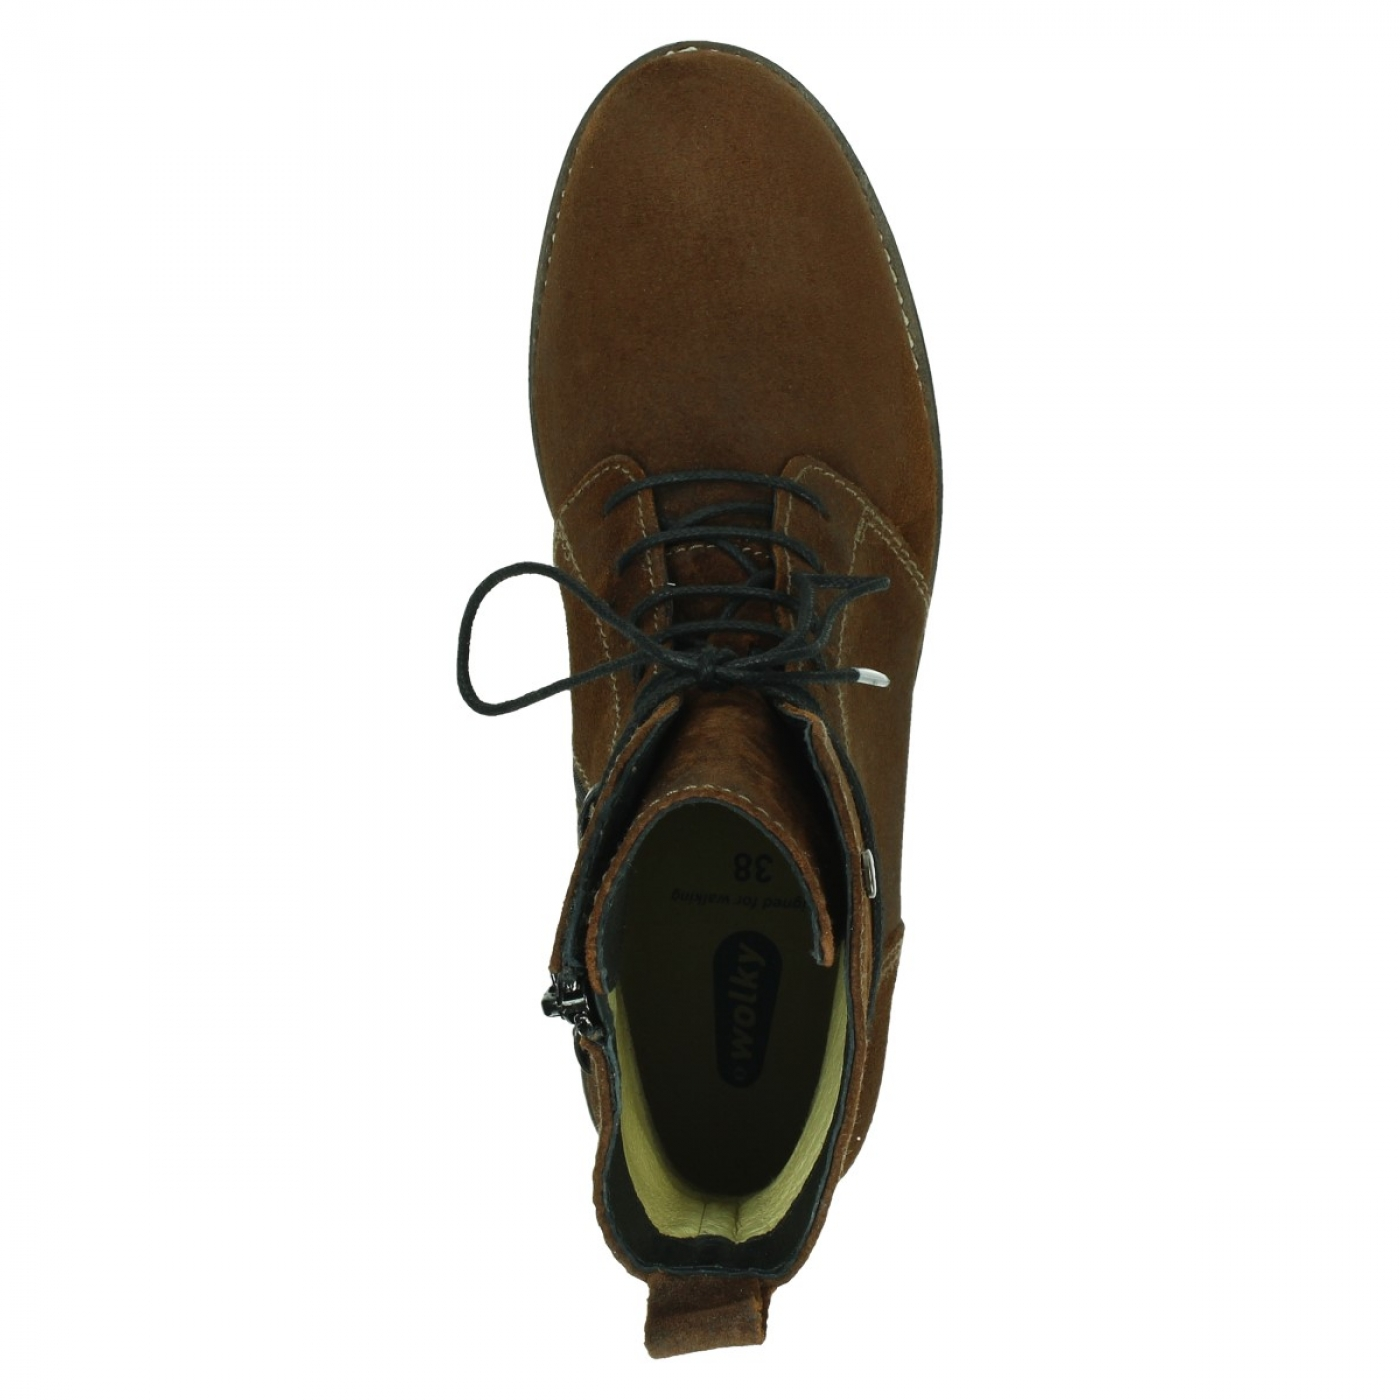 04432 Murray 45410 tobacco suede